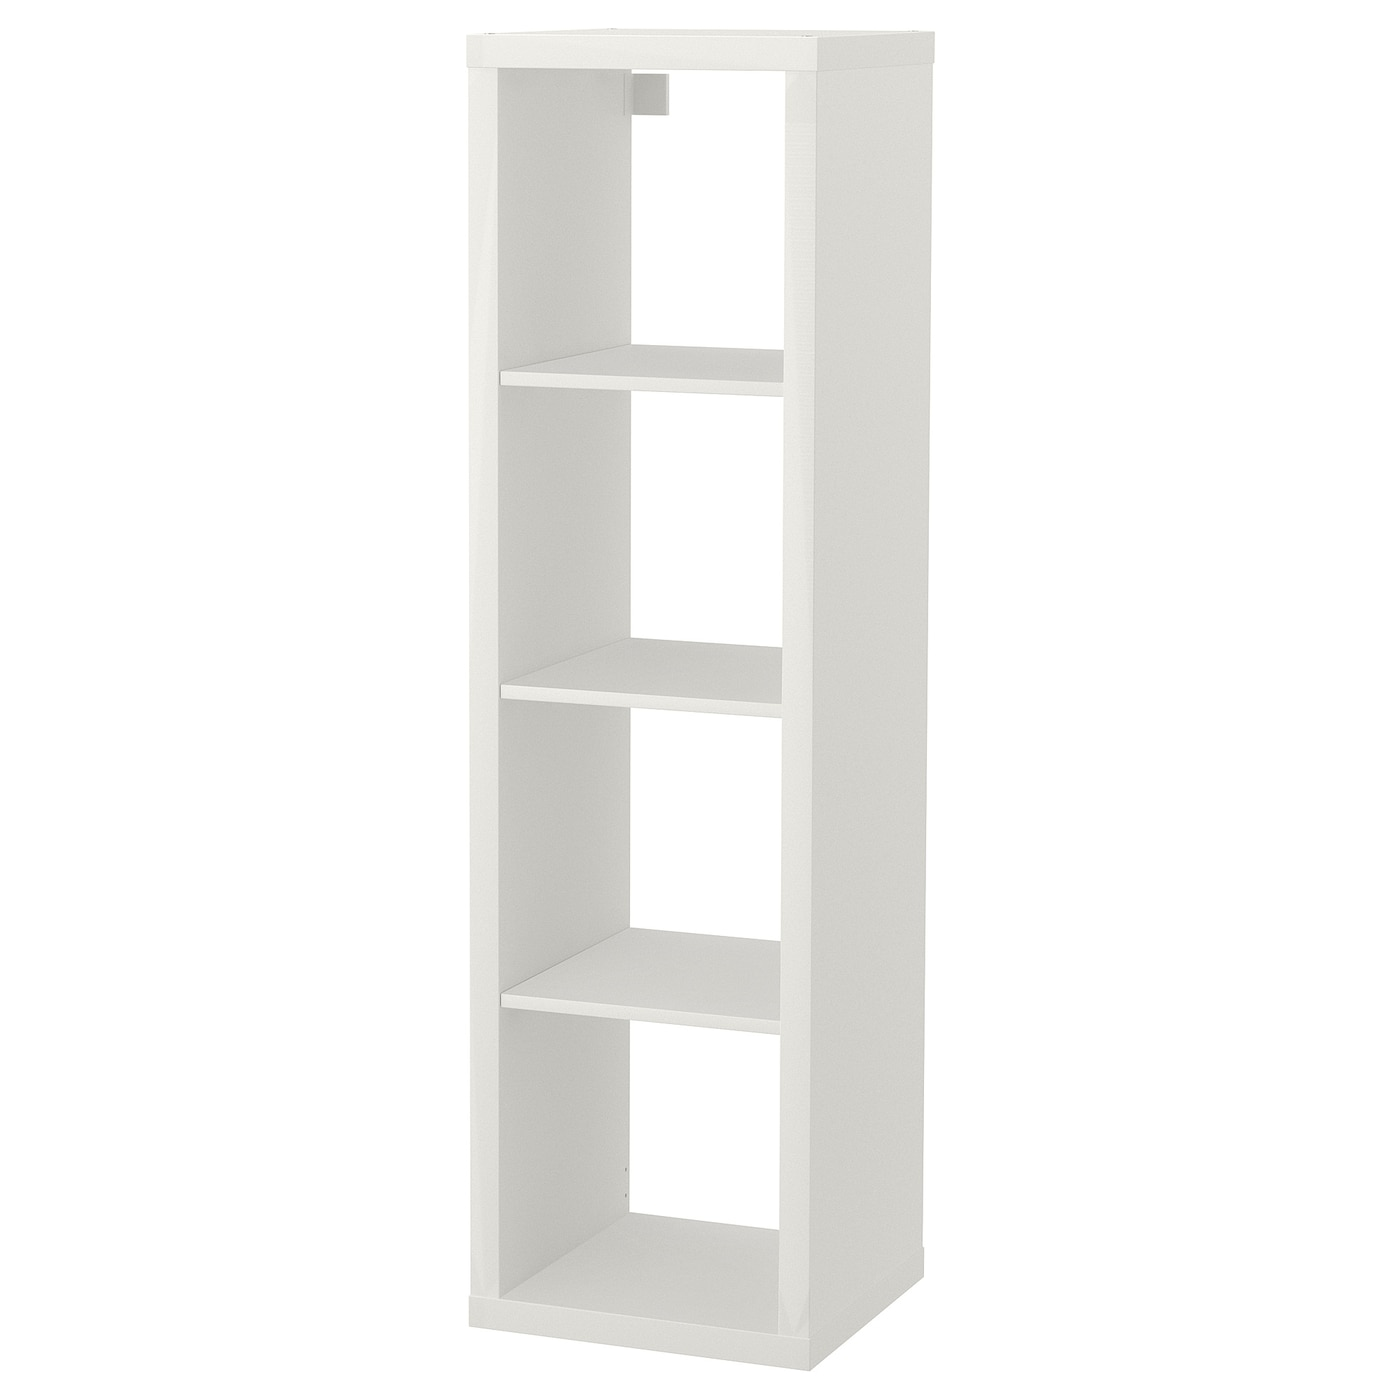 Kallax White Shelving Unit 42x147 Cm